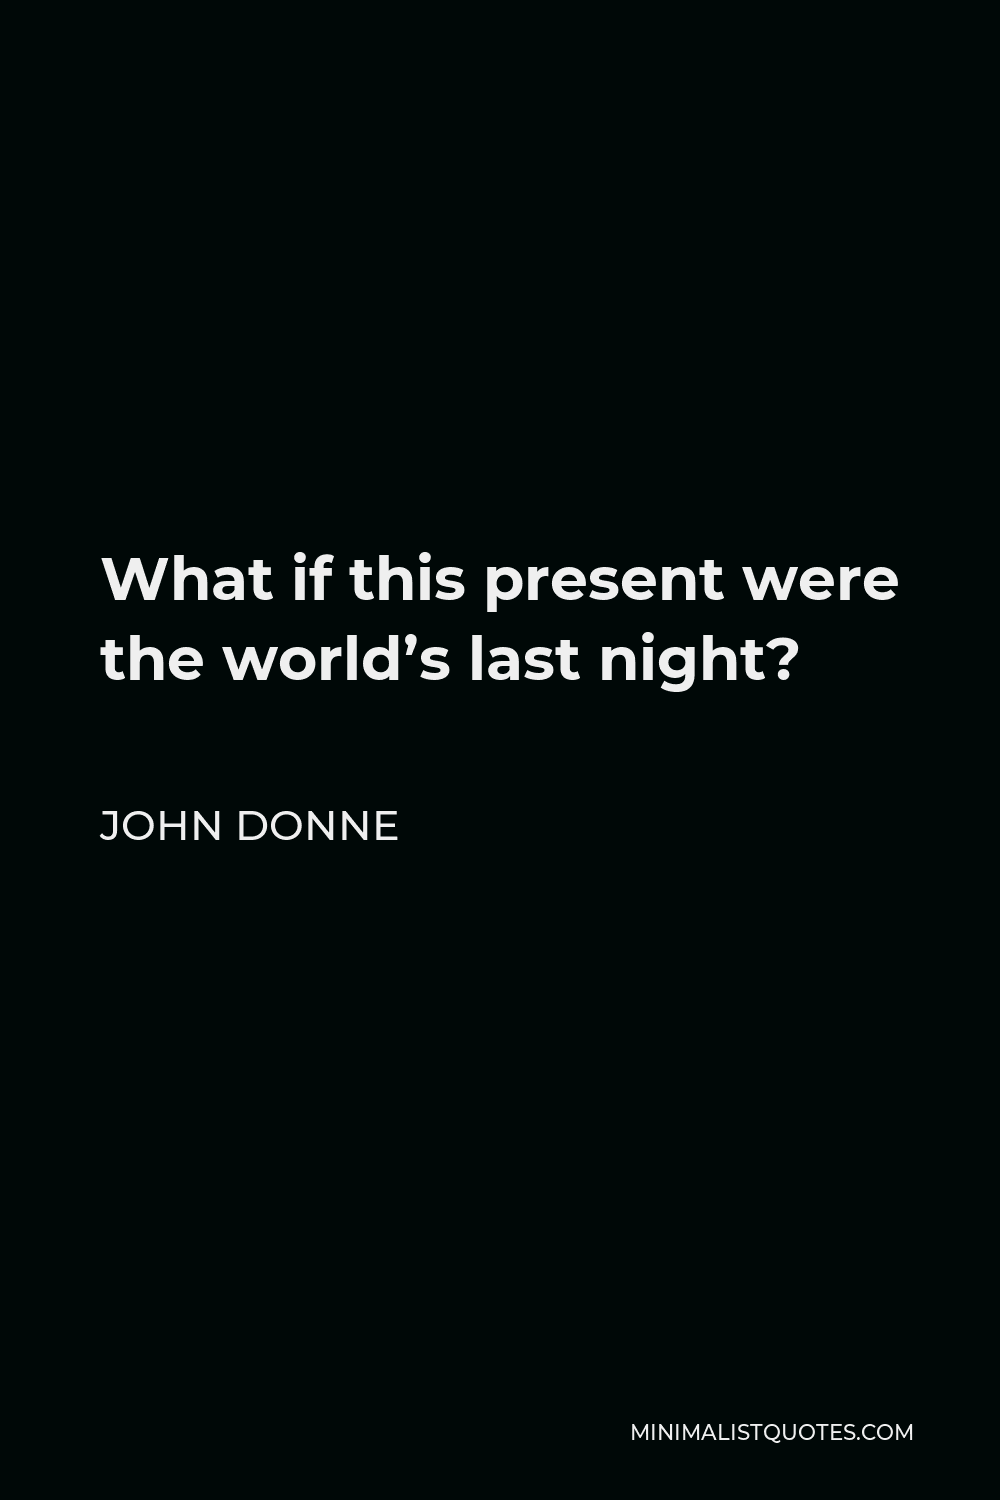 John Donne Quote - What if this present were the world's last night?